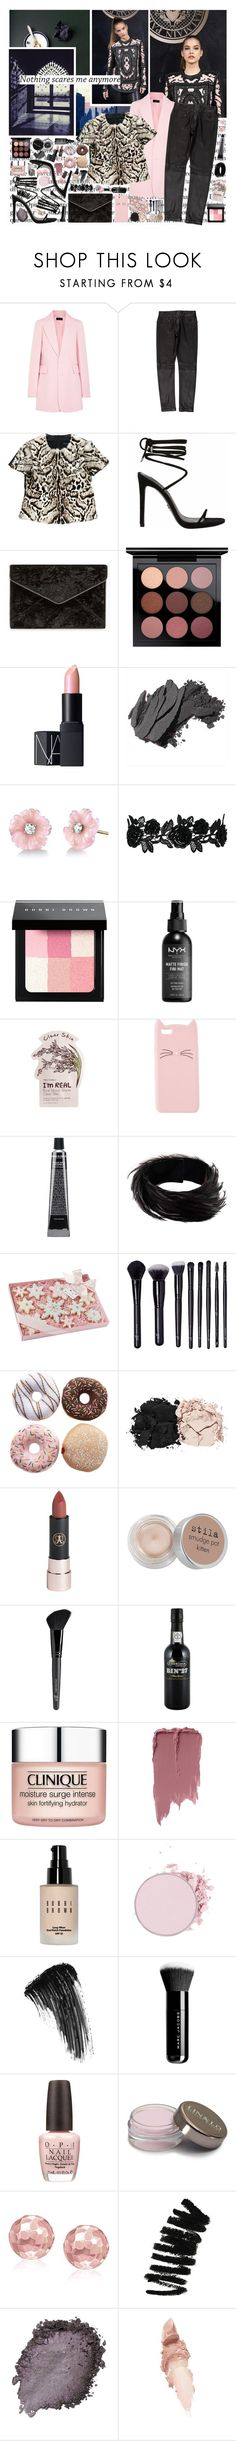 """nothing"" by ezster ❤ liked on Polyvore featuring Joseph, rag & bone, Christopher Kane, Rebecca Minkoff, MAC Cosmetics, Bobbi Brown Cosmetics, NARS Cosmetics, Irene Neuwirth, NYX and Tony Moly"